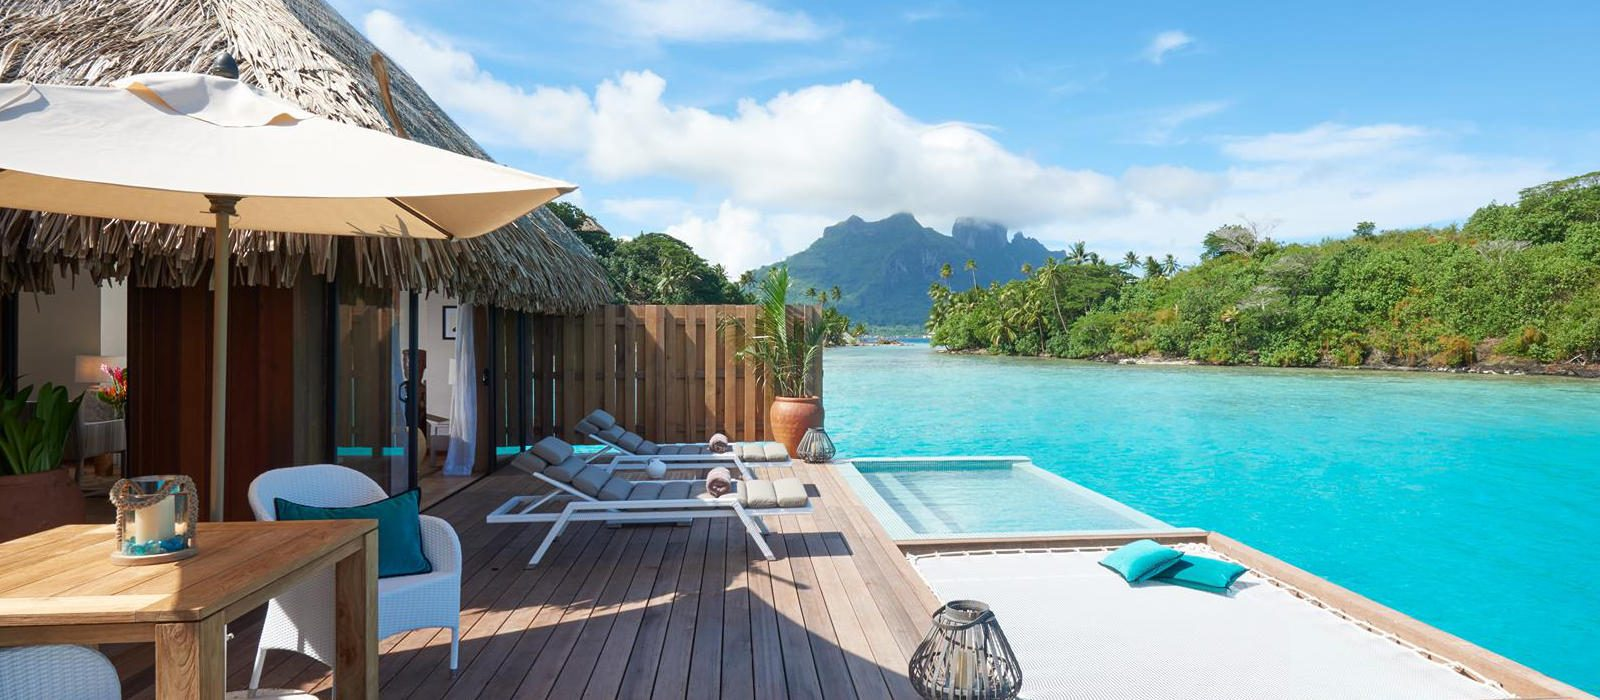 book your hotel in French Polynesia with EASYTahiti